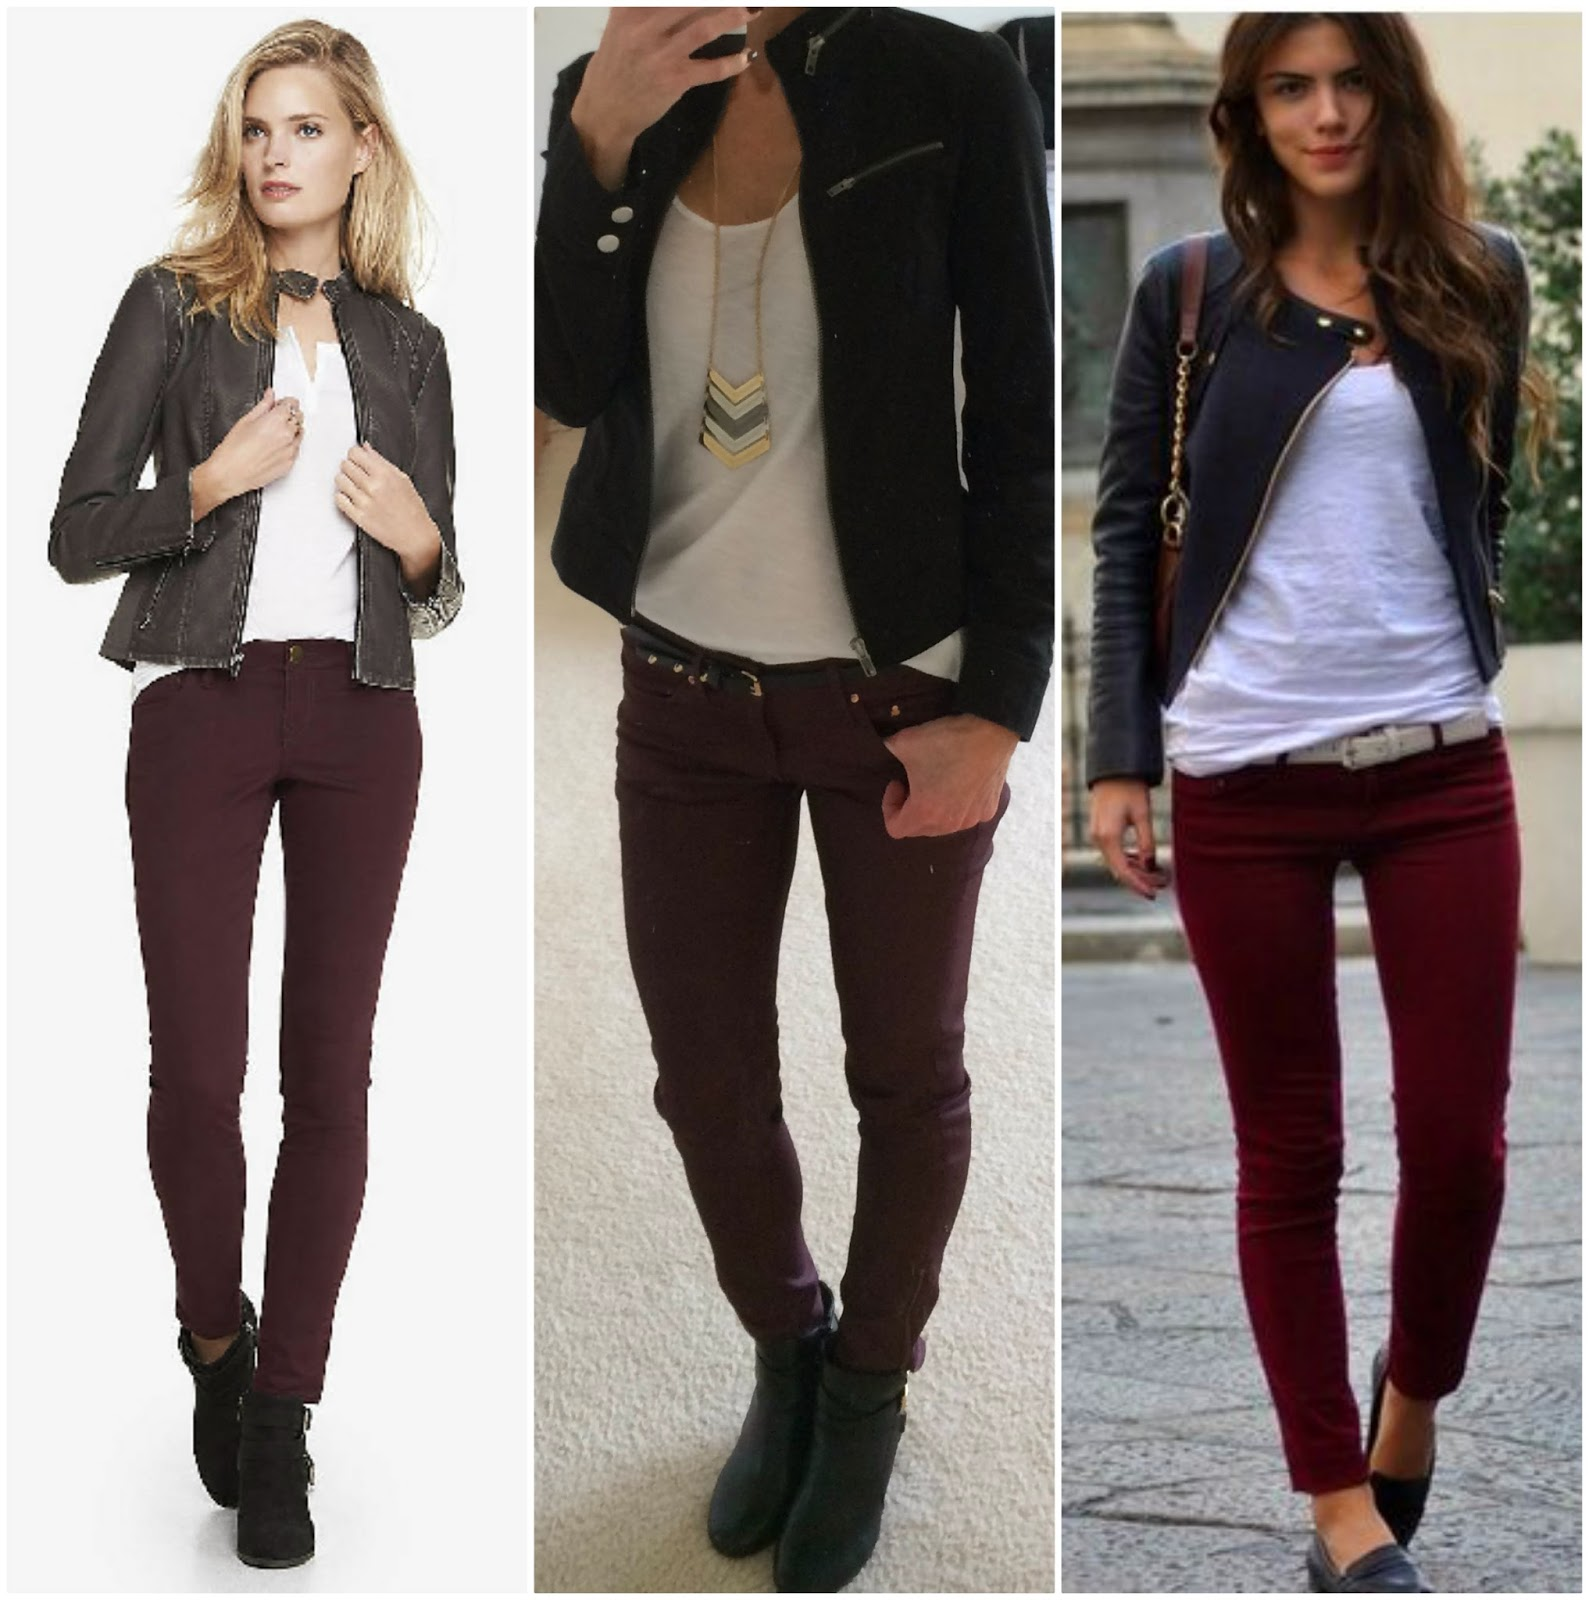 Burgundy jeans styling options, Express dark red jean leggings